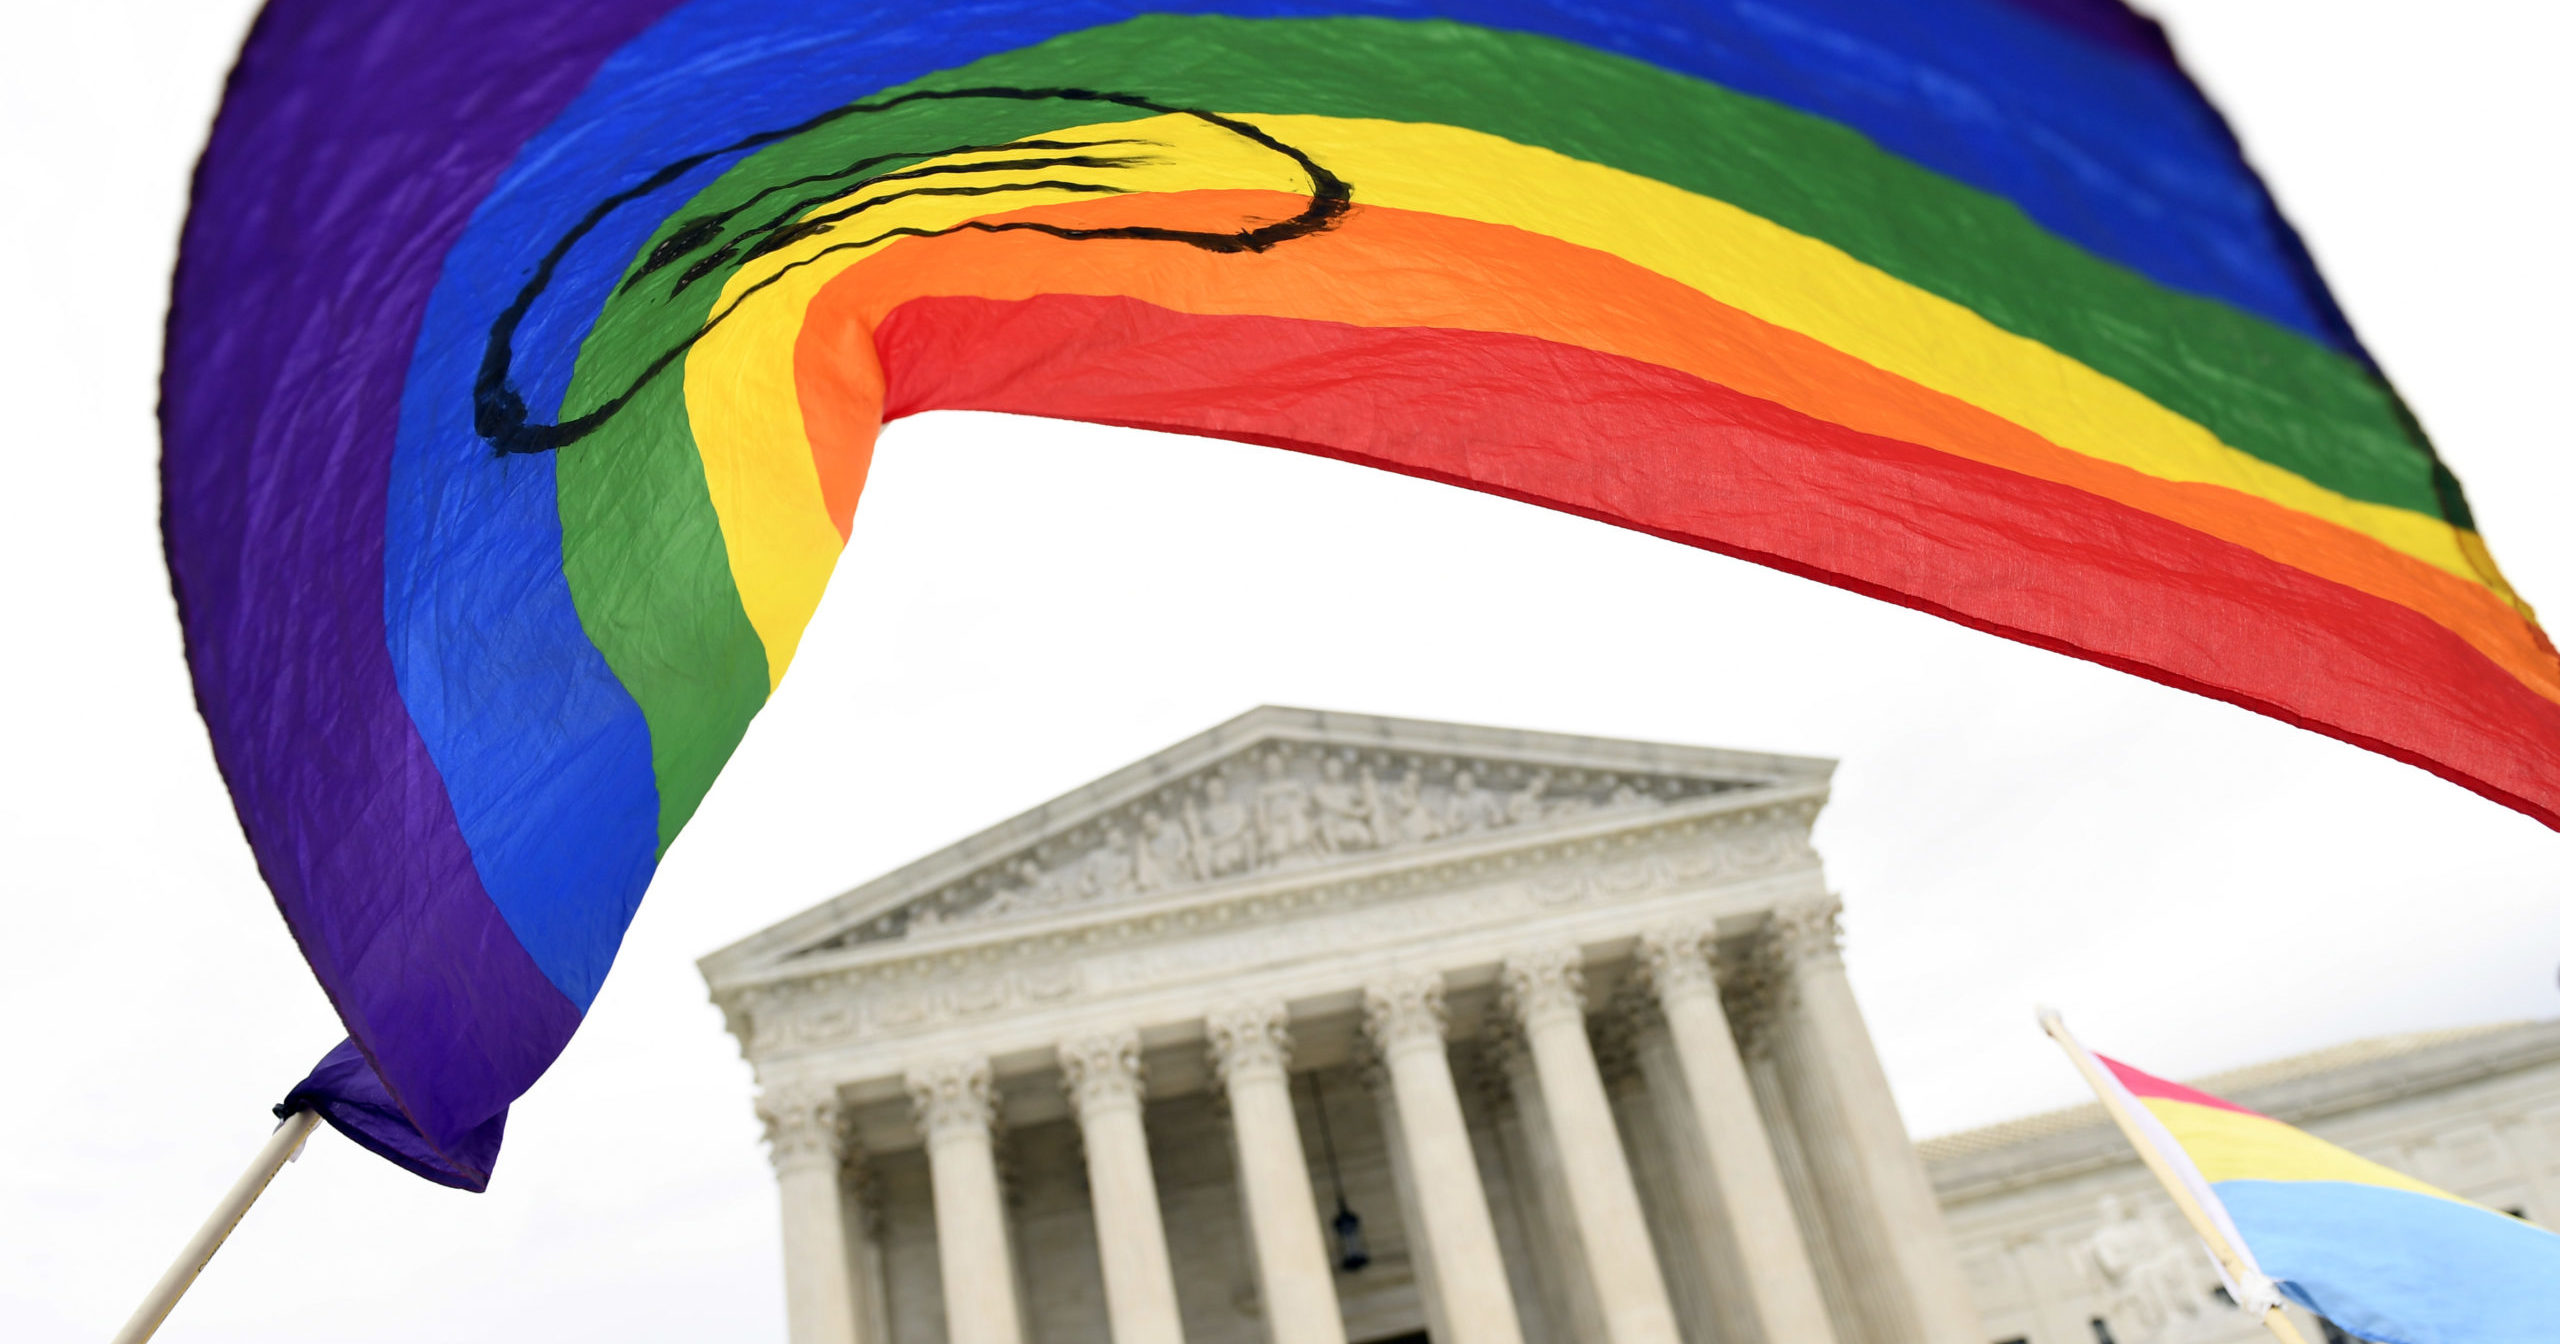 In this Oct. 8, 2019, file photo, the LGBT flag is waved outside the Supreme Court in Washington, D.C.